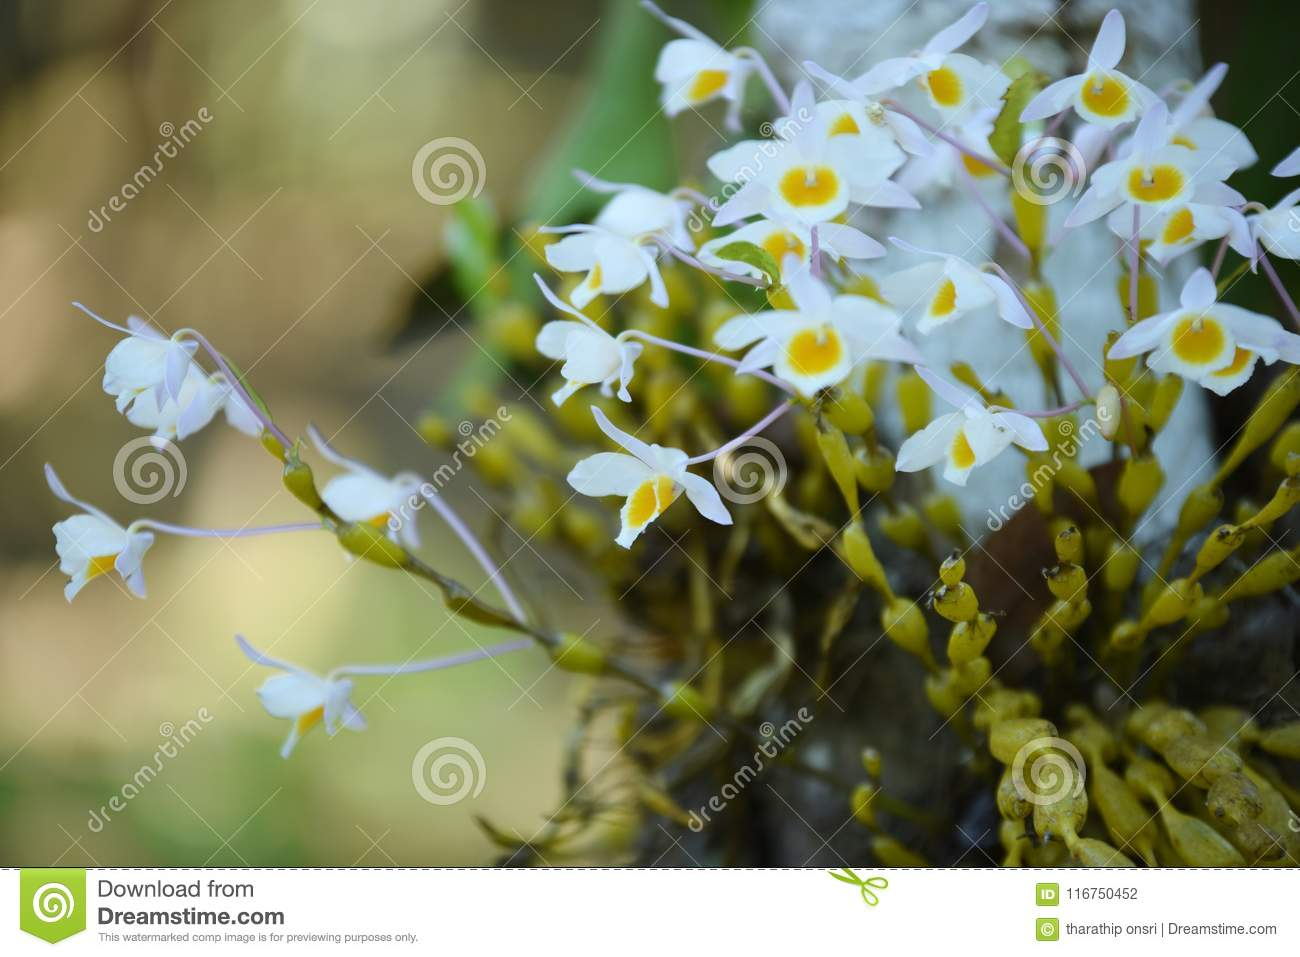 Wild orchid rare and gorgeous stock photo image of love breeding wild orchid rare and gorgeousautiful flowers in the gardenautiful flowers in the garden flowers are blooming in the breeding season has a green izmirmasajfo